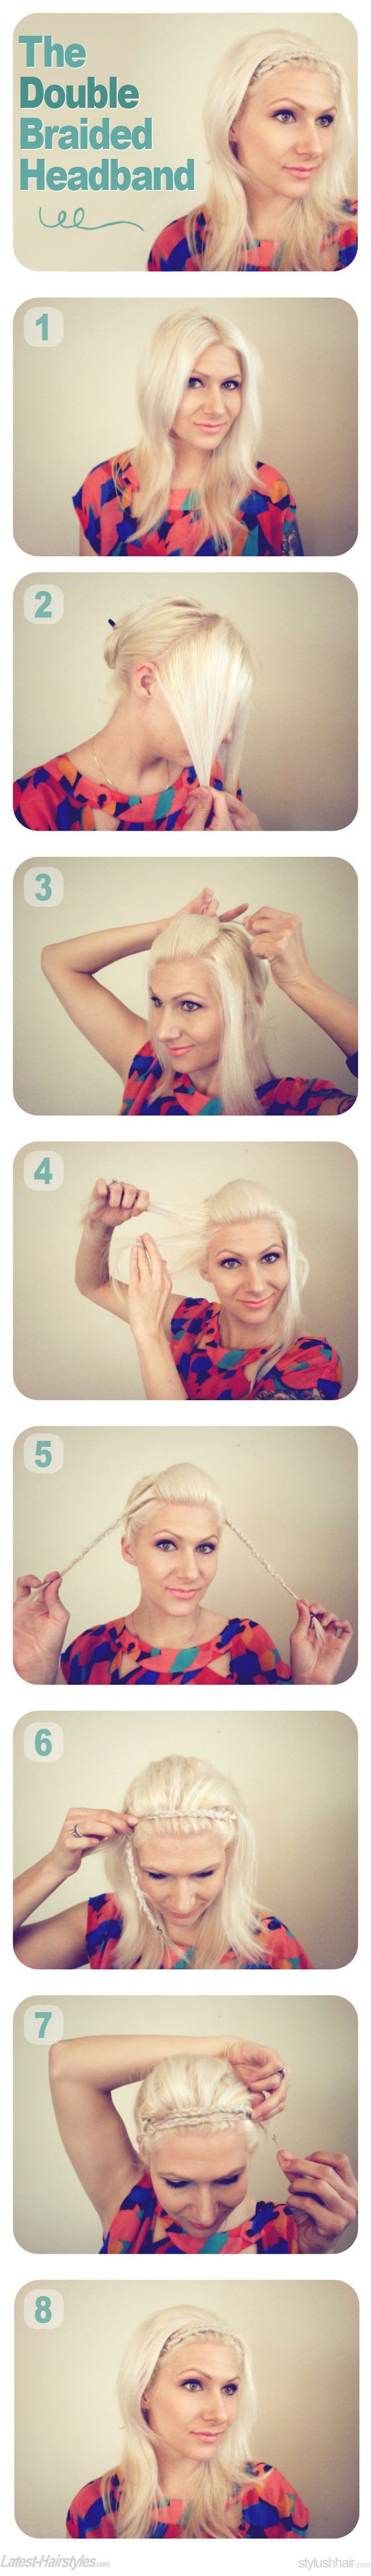 Get this double braided headband look by @Jenny Strebe in just a few simple steps! http://www.latest-hairstyles.com/tutorials/double-braided-headband.html